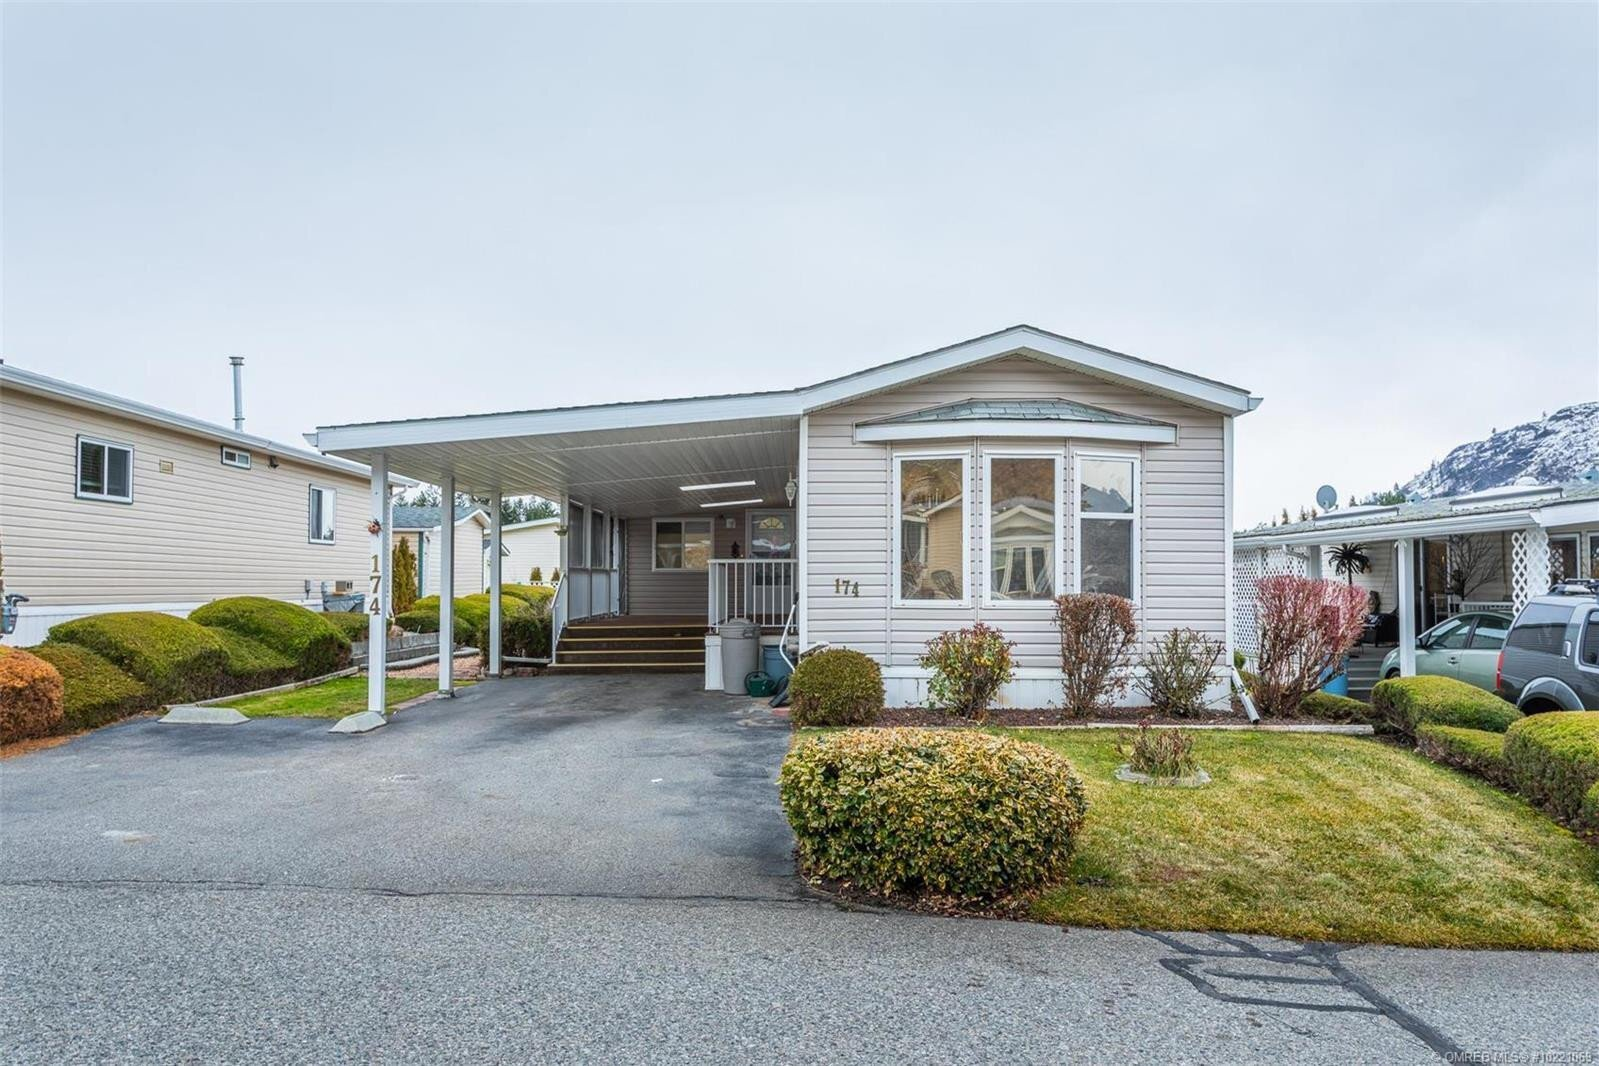 Residential property for sale at 1850 Shannon Lake Rd Unit 174 West Kelowna British Columbia - MLS: 10221069